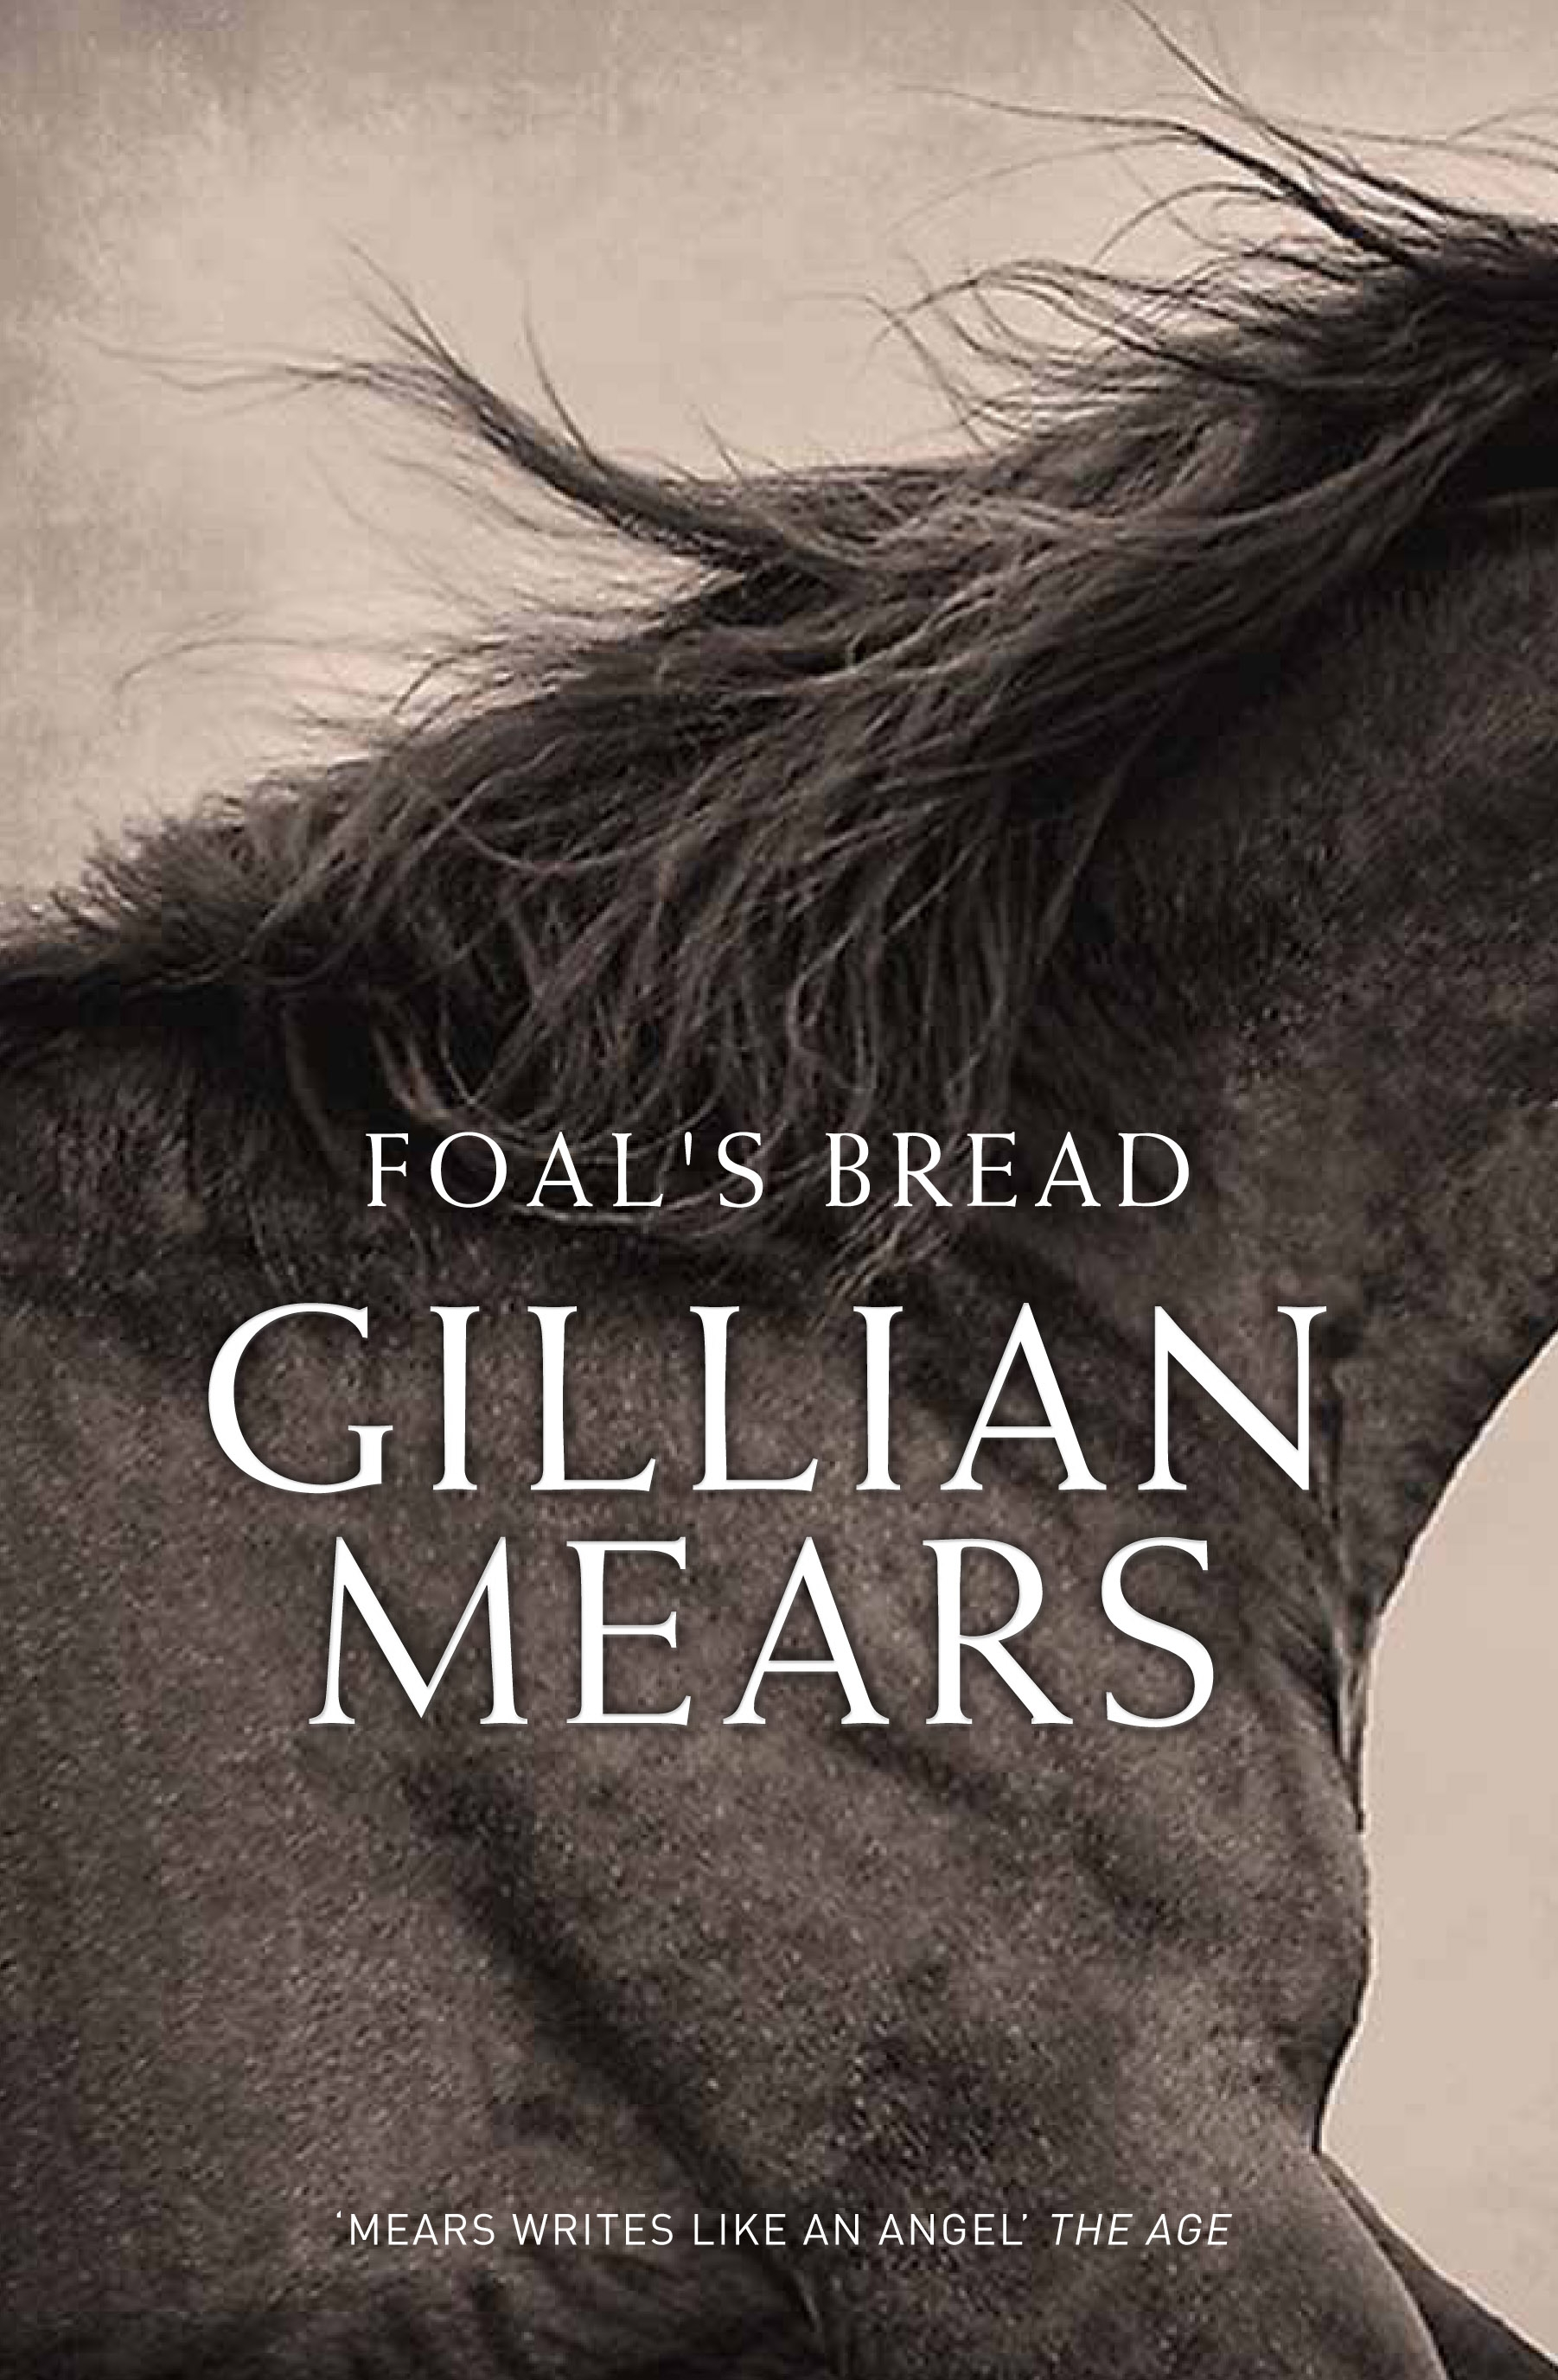 *Foal's Bread*, Gillian Mears, A&U, designed by Sandy Cull, gogoGinko, and Yolande Gray.